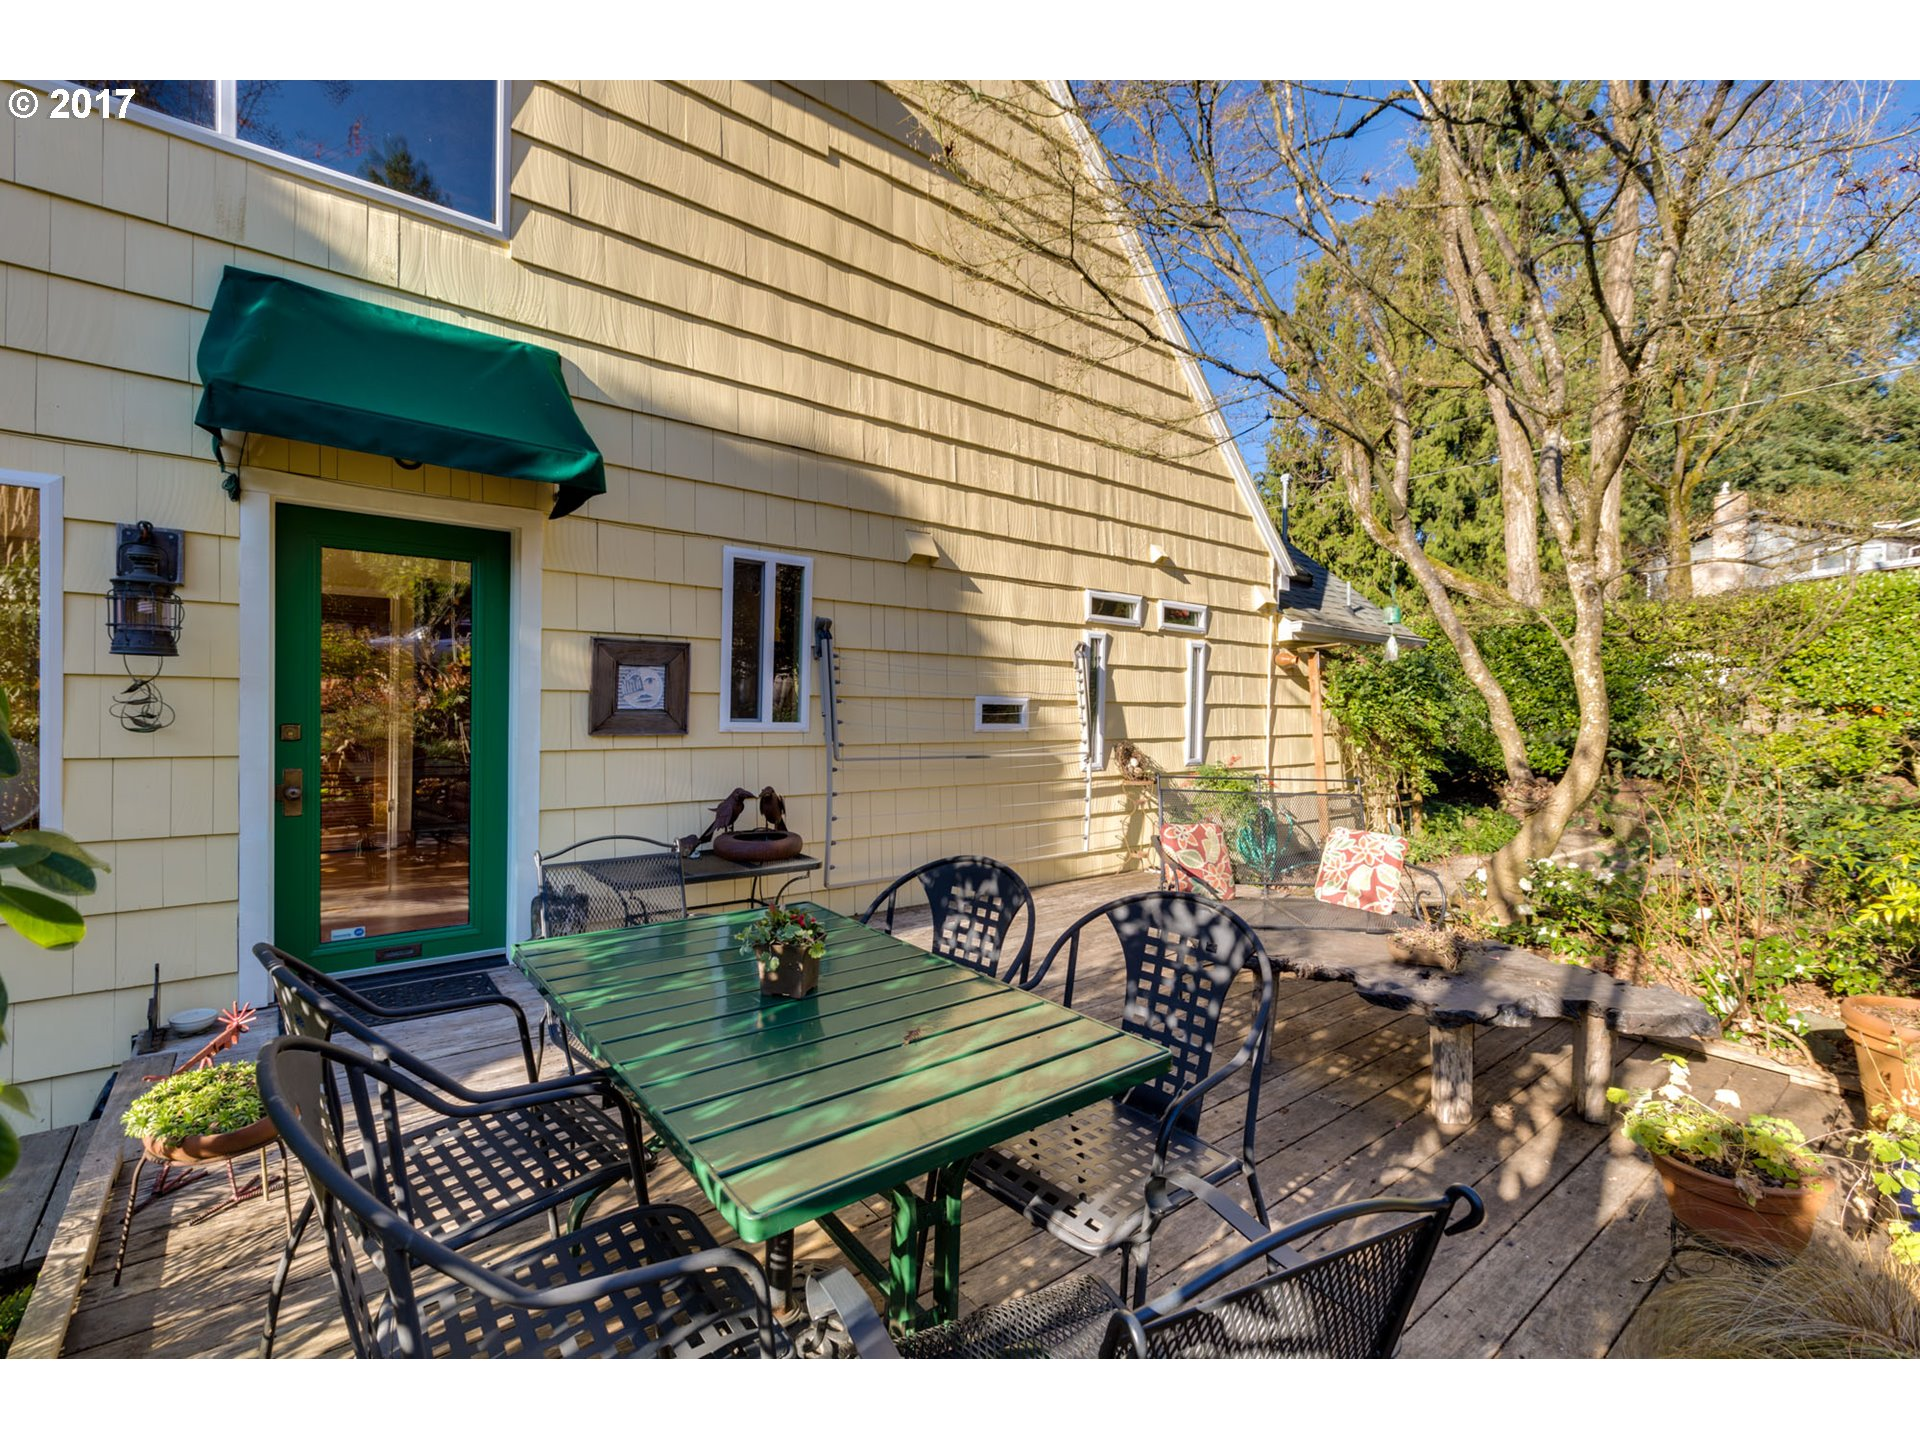 OPEN 12/12 10:30-12:30. Fall in love in Fairoaks! So close-in! Woodsy, spacious bungalow is full of surprises, like the sunny, open great room plan, loft, & vintage original details. Huge windows & skylights bring in the beautiful setting, meandering gardens, & abundant light. Many eco-friendly updates. Near Trolley Trail bike & ped path, MAX, cafes, shops, lake, & boat ramp. Wildlife abounds. Wonderful creative & connected community.